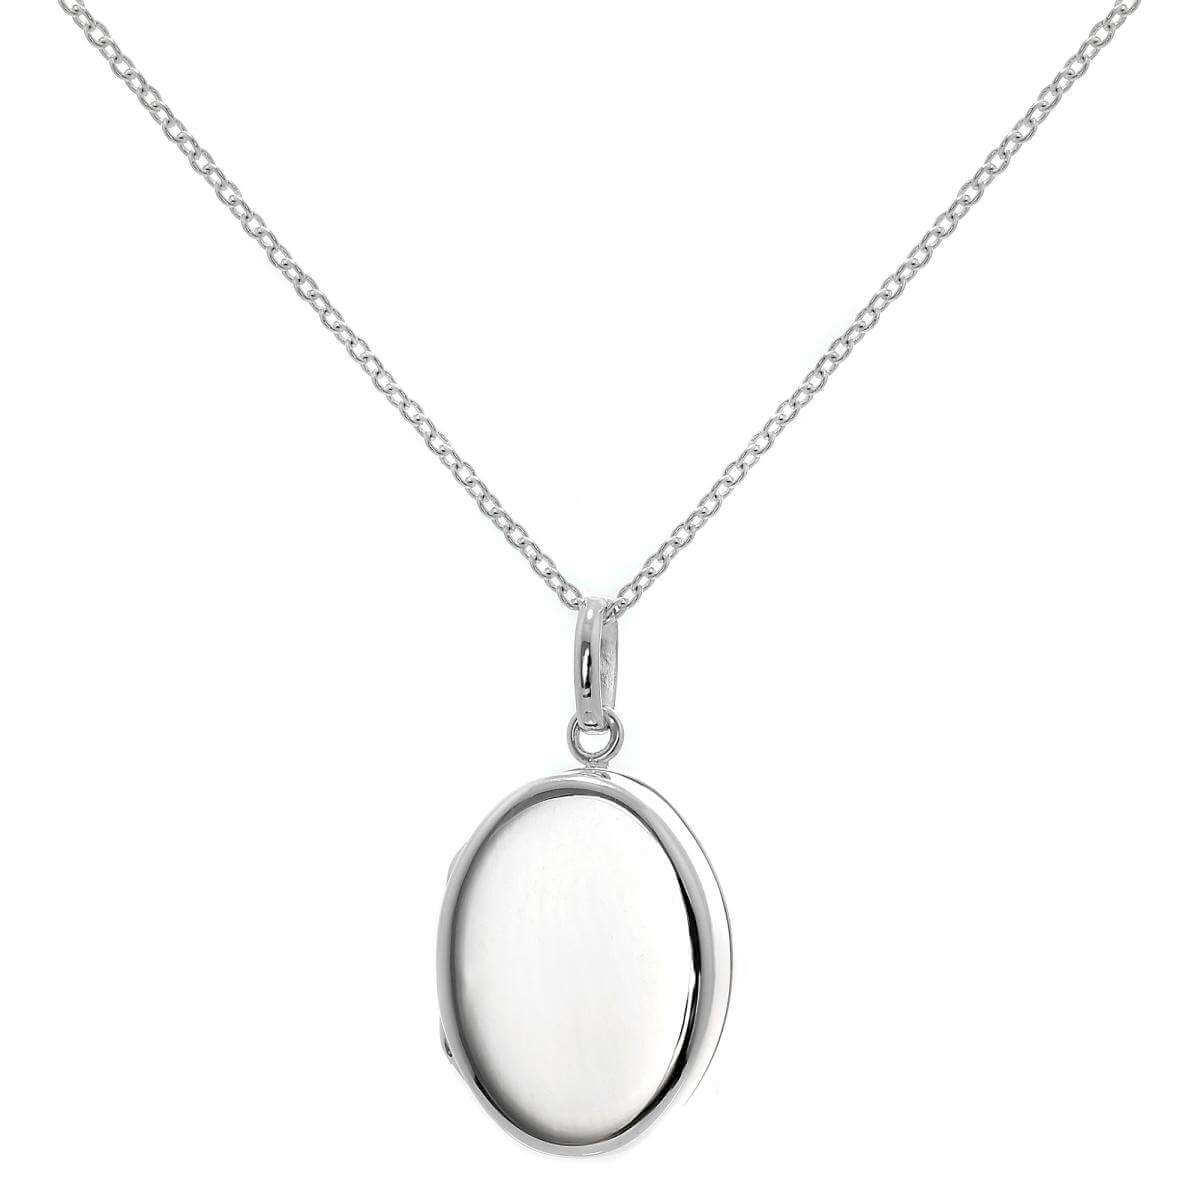 Sterling Silver Oval Locket Necklace on Chain